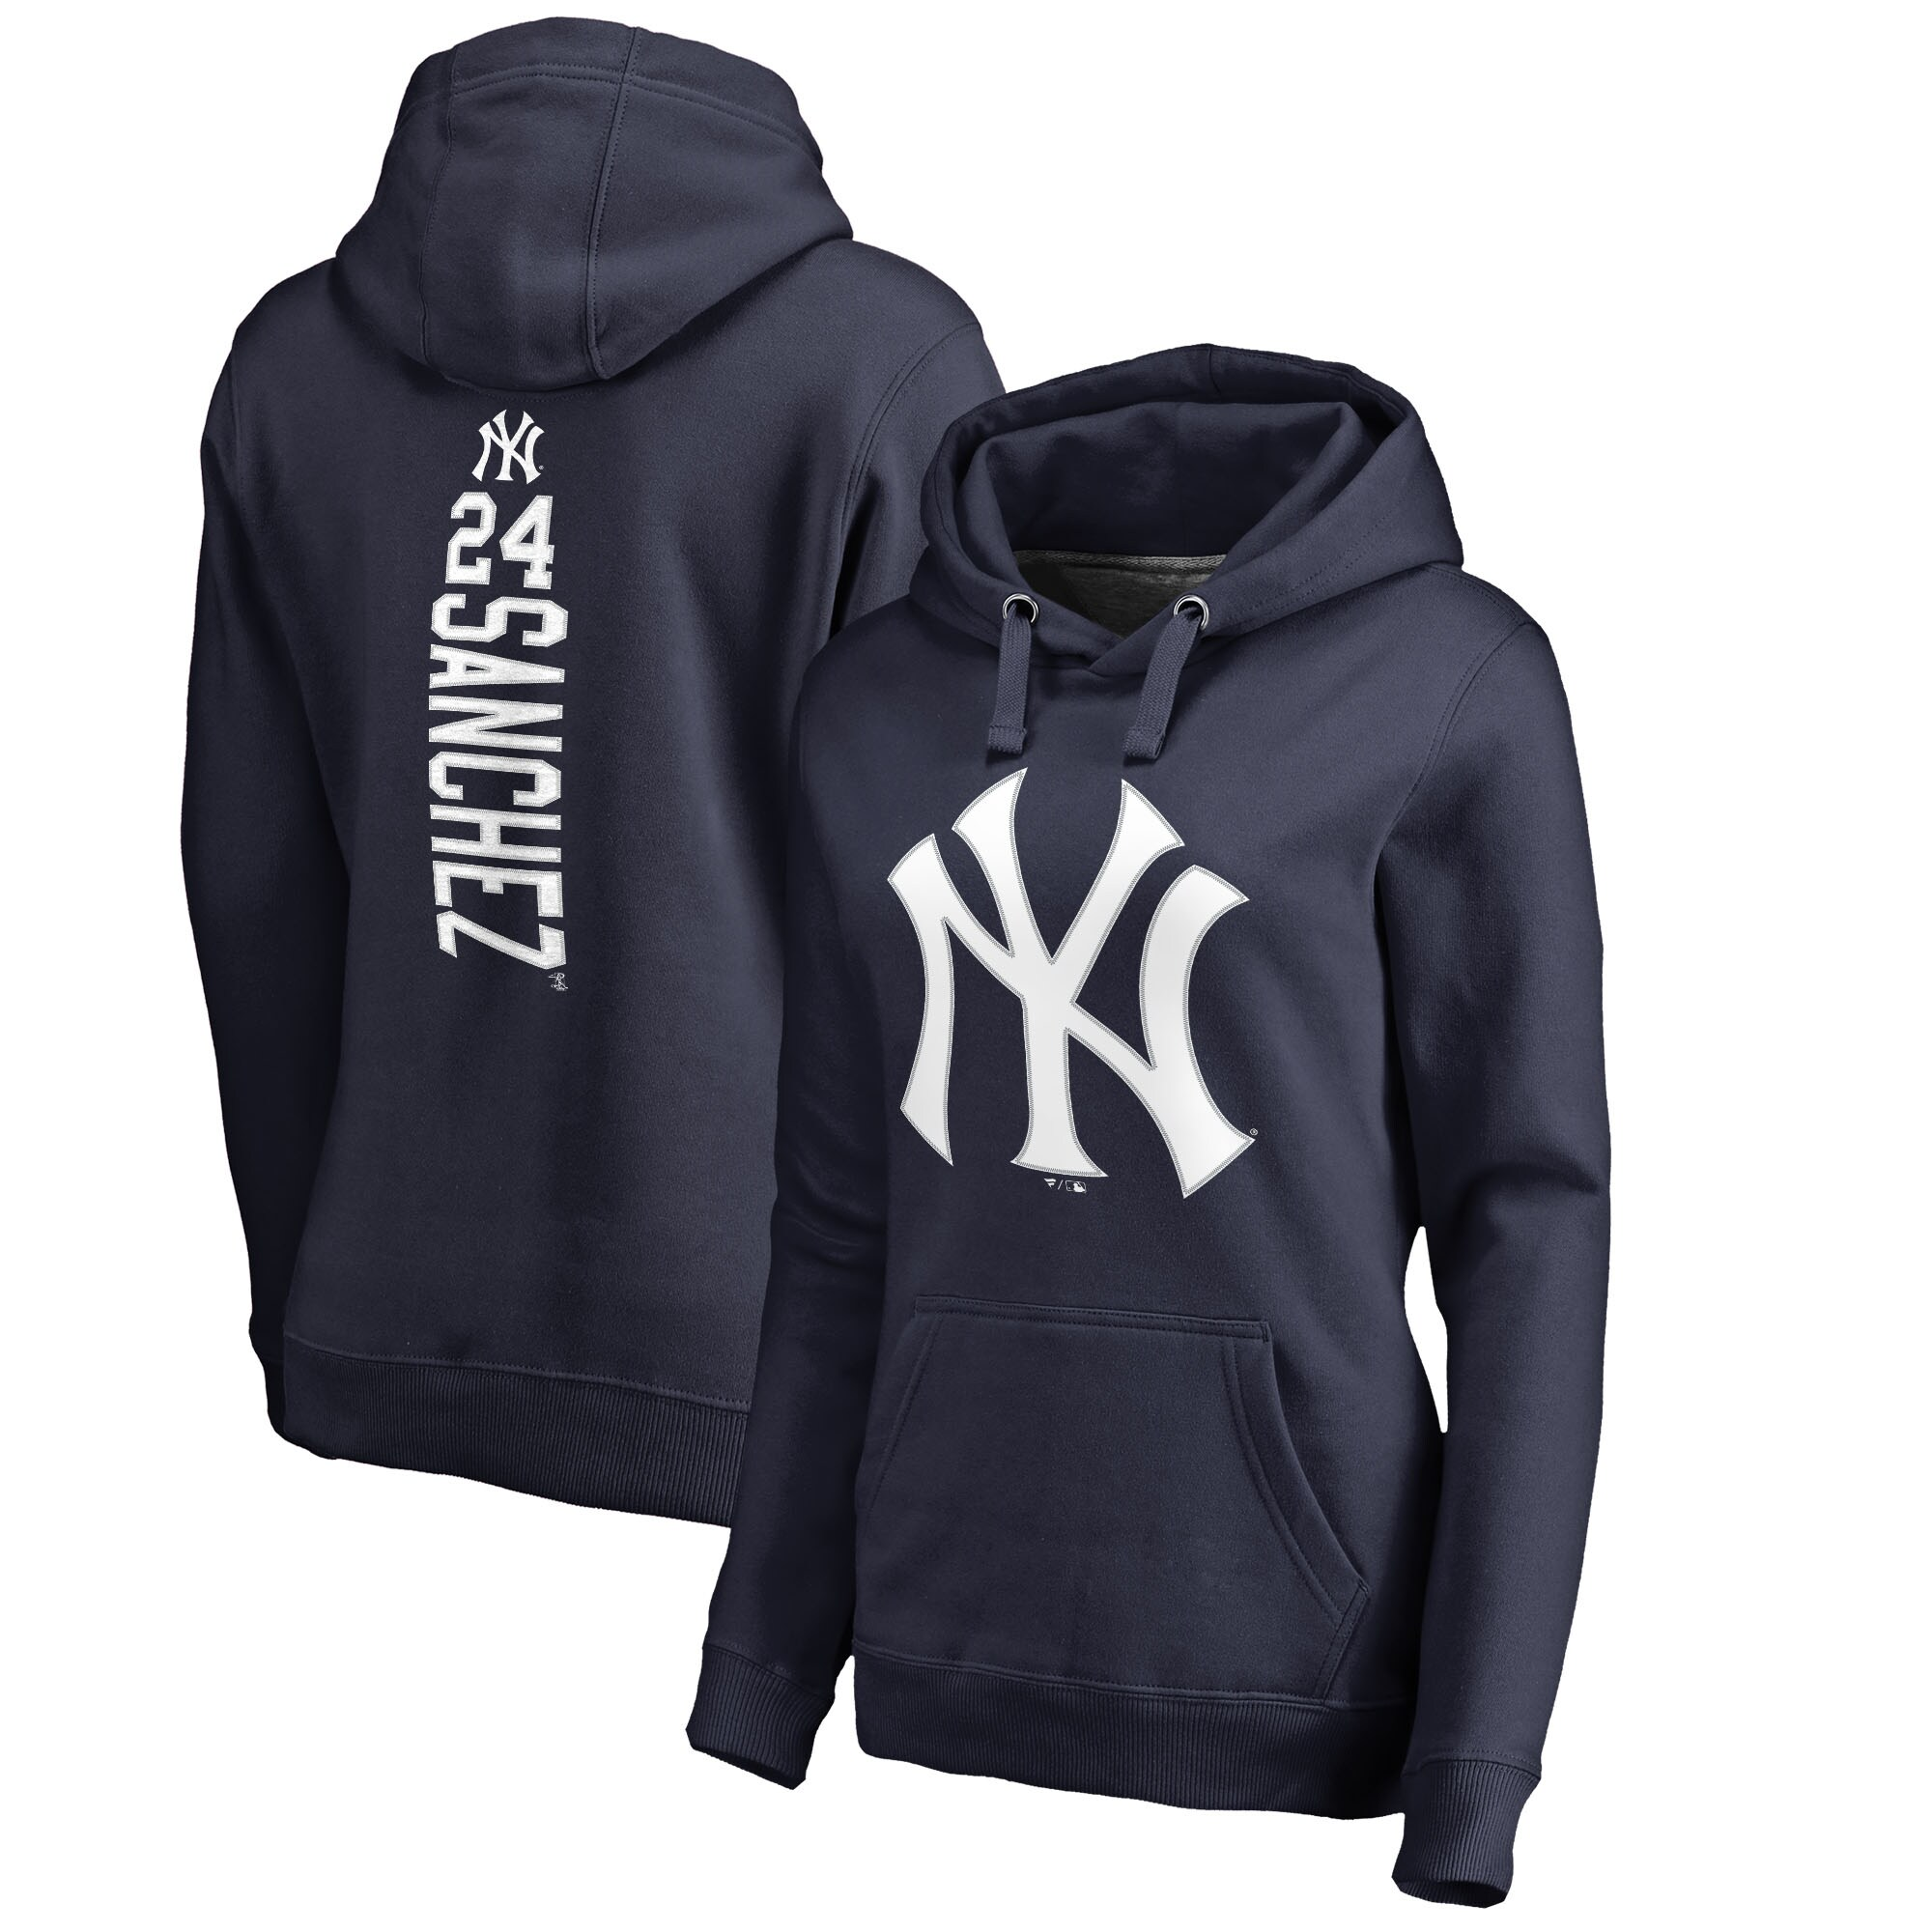 Gary Sanchez New York Yankees Fanatics Branded Women's Backer Pullover Hoodie - Navy